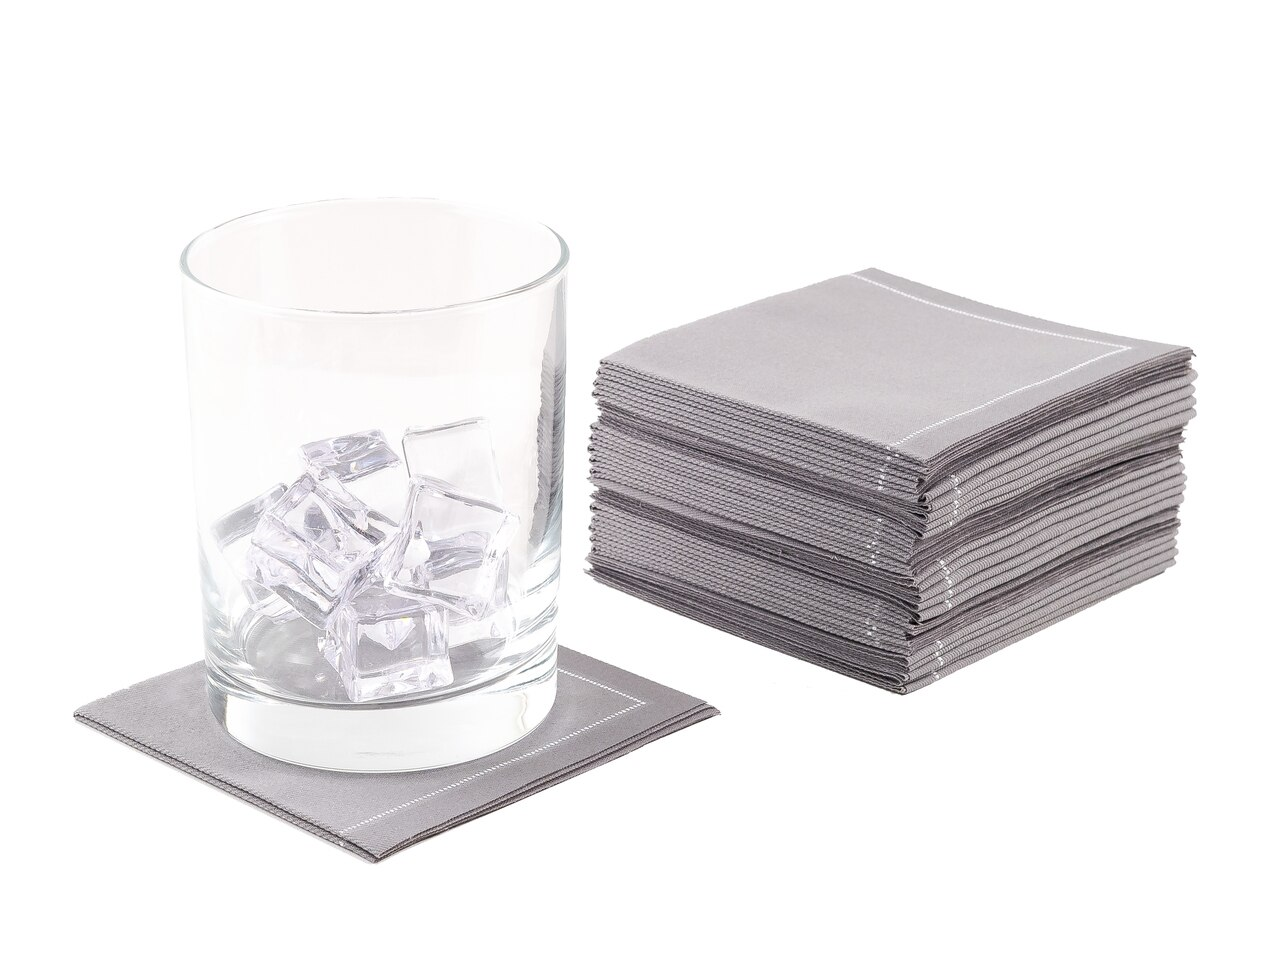 "Grey Cotton 1/4 Fold Cocktail (200 GSM ) - 8"" x 8"" (folded 4"" x 4"") - 600 units"